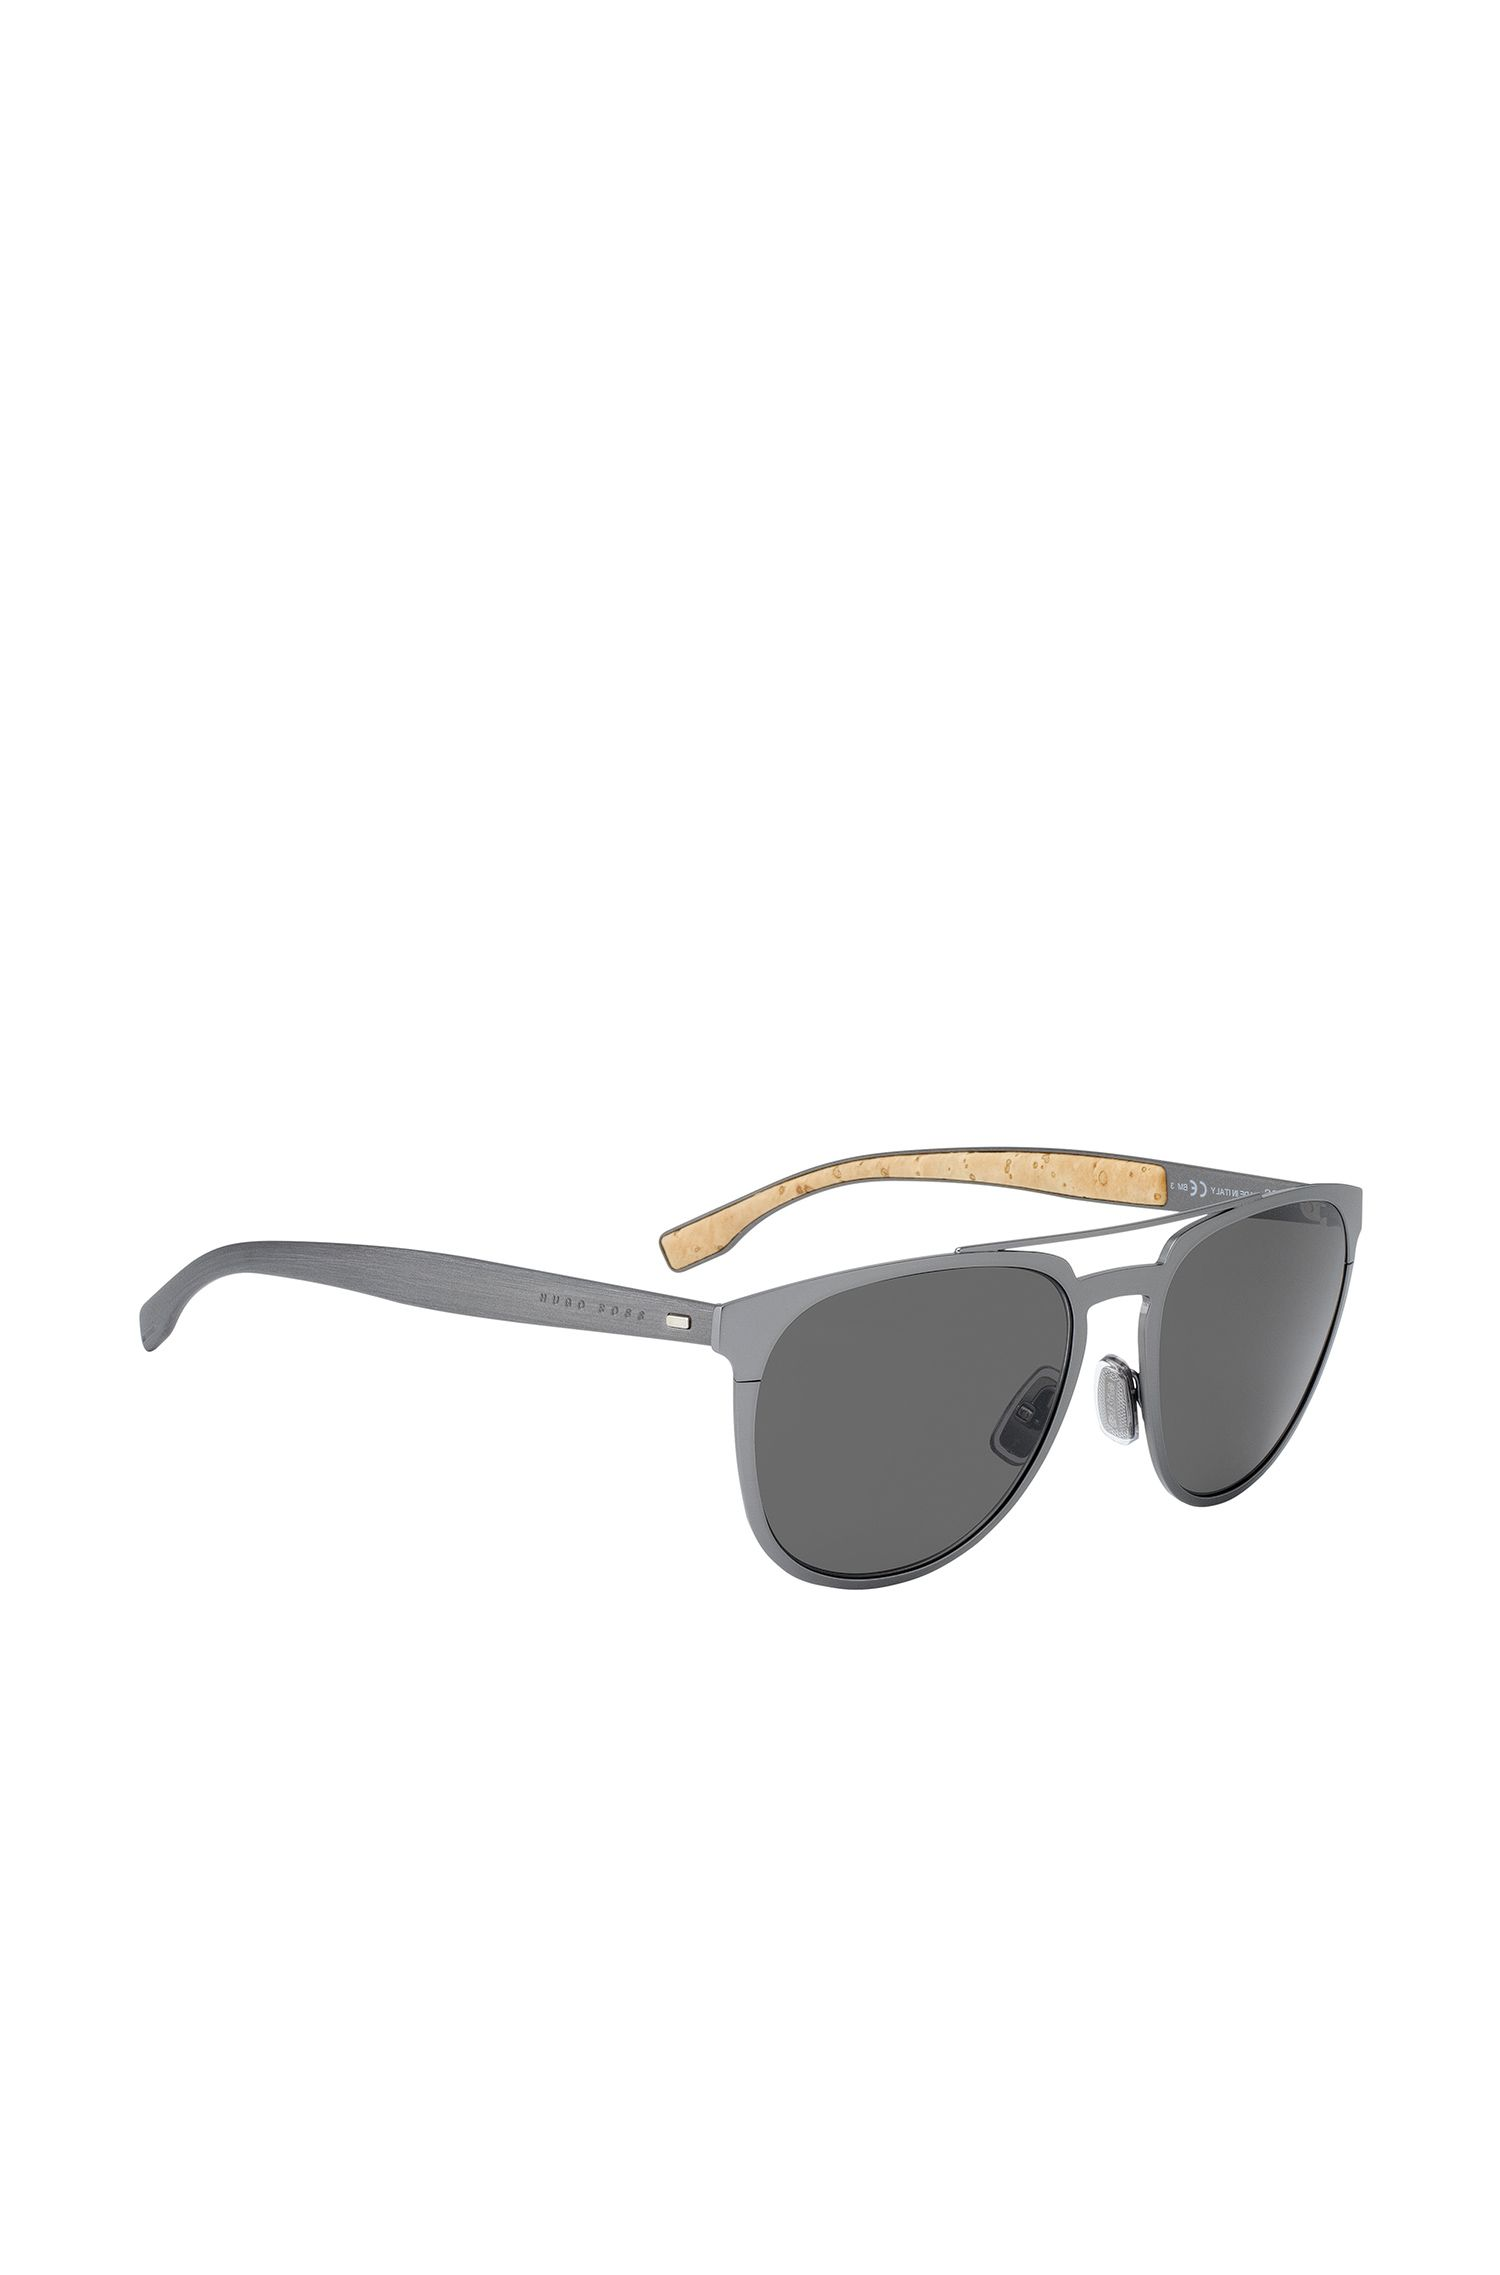 Silver Round Metal Sunglasses | BOSS 0882S